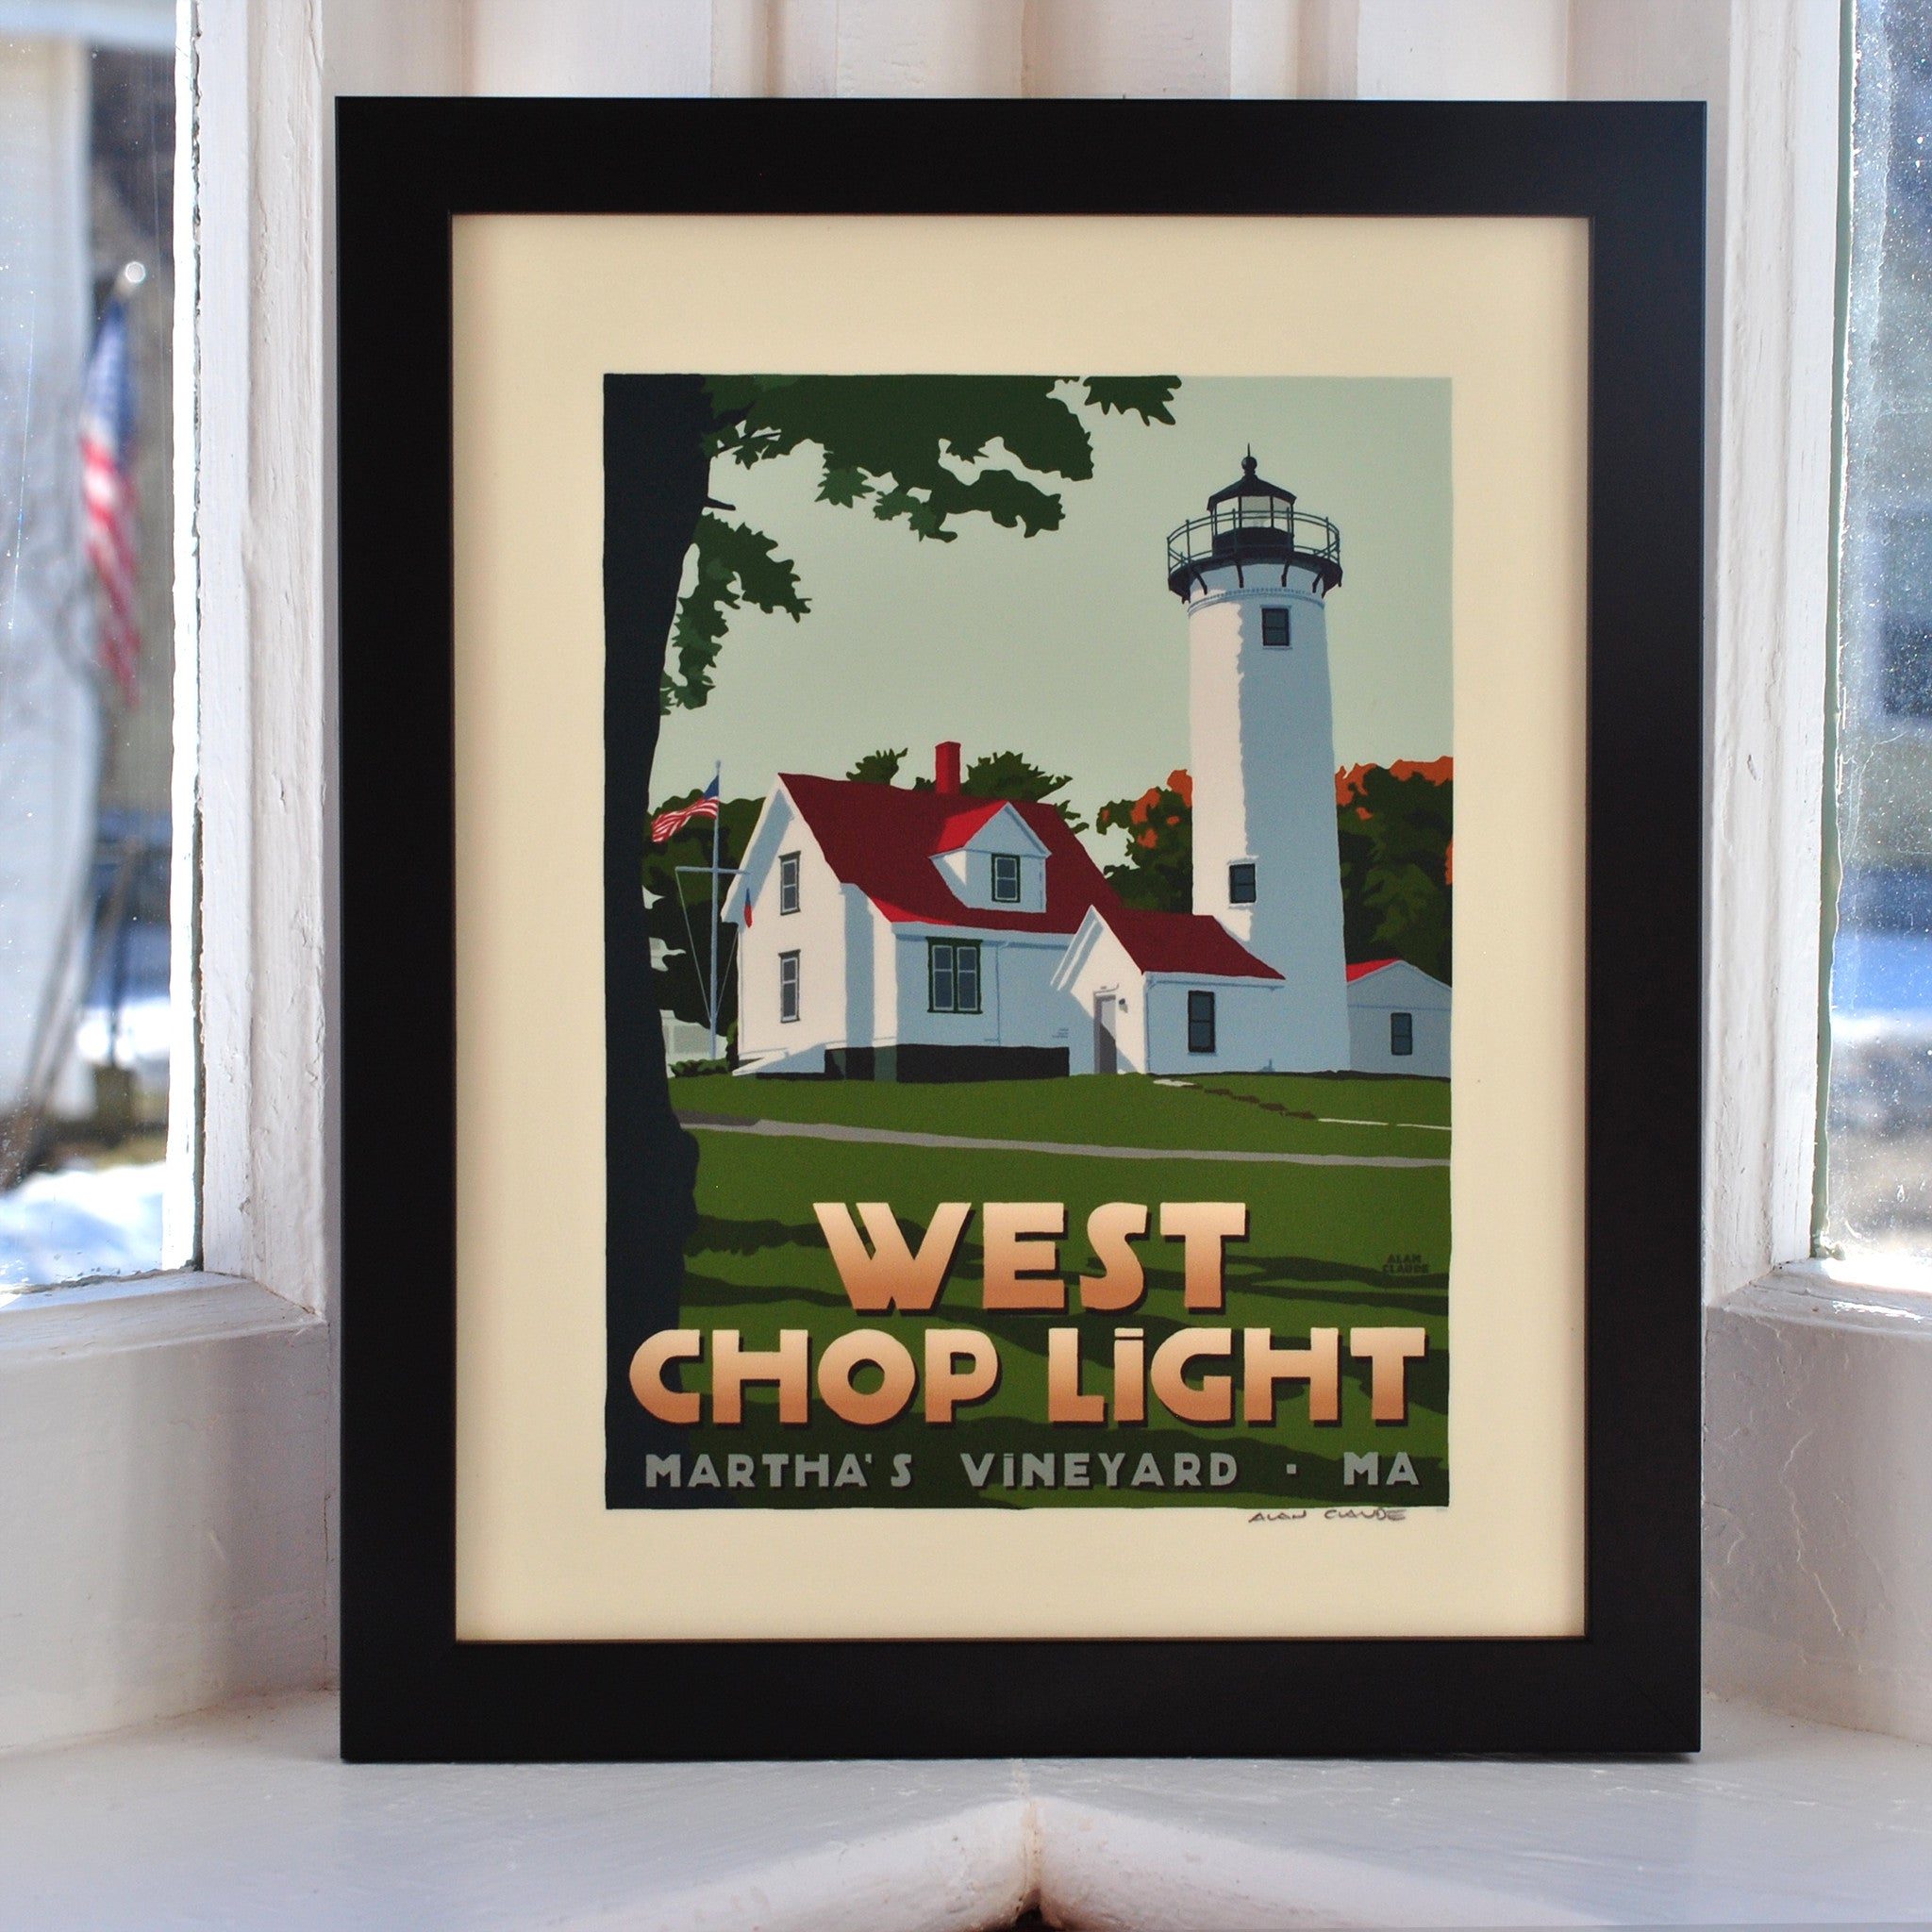 "West Chop Light Art Print 8"" x 10"" Framed Travel Poster - Massachusetts"